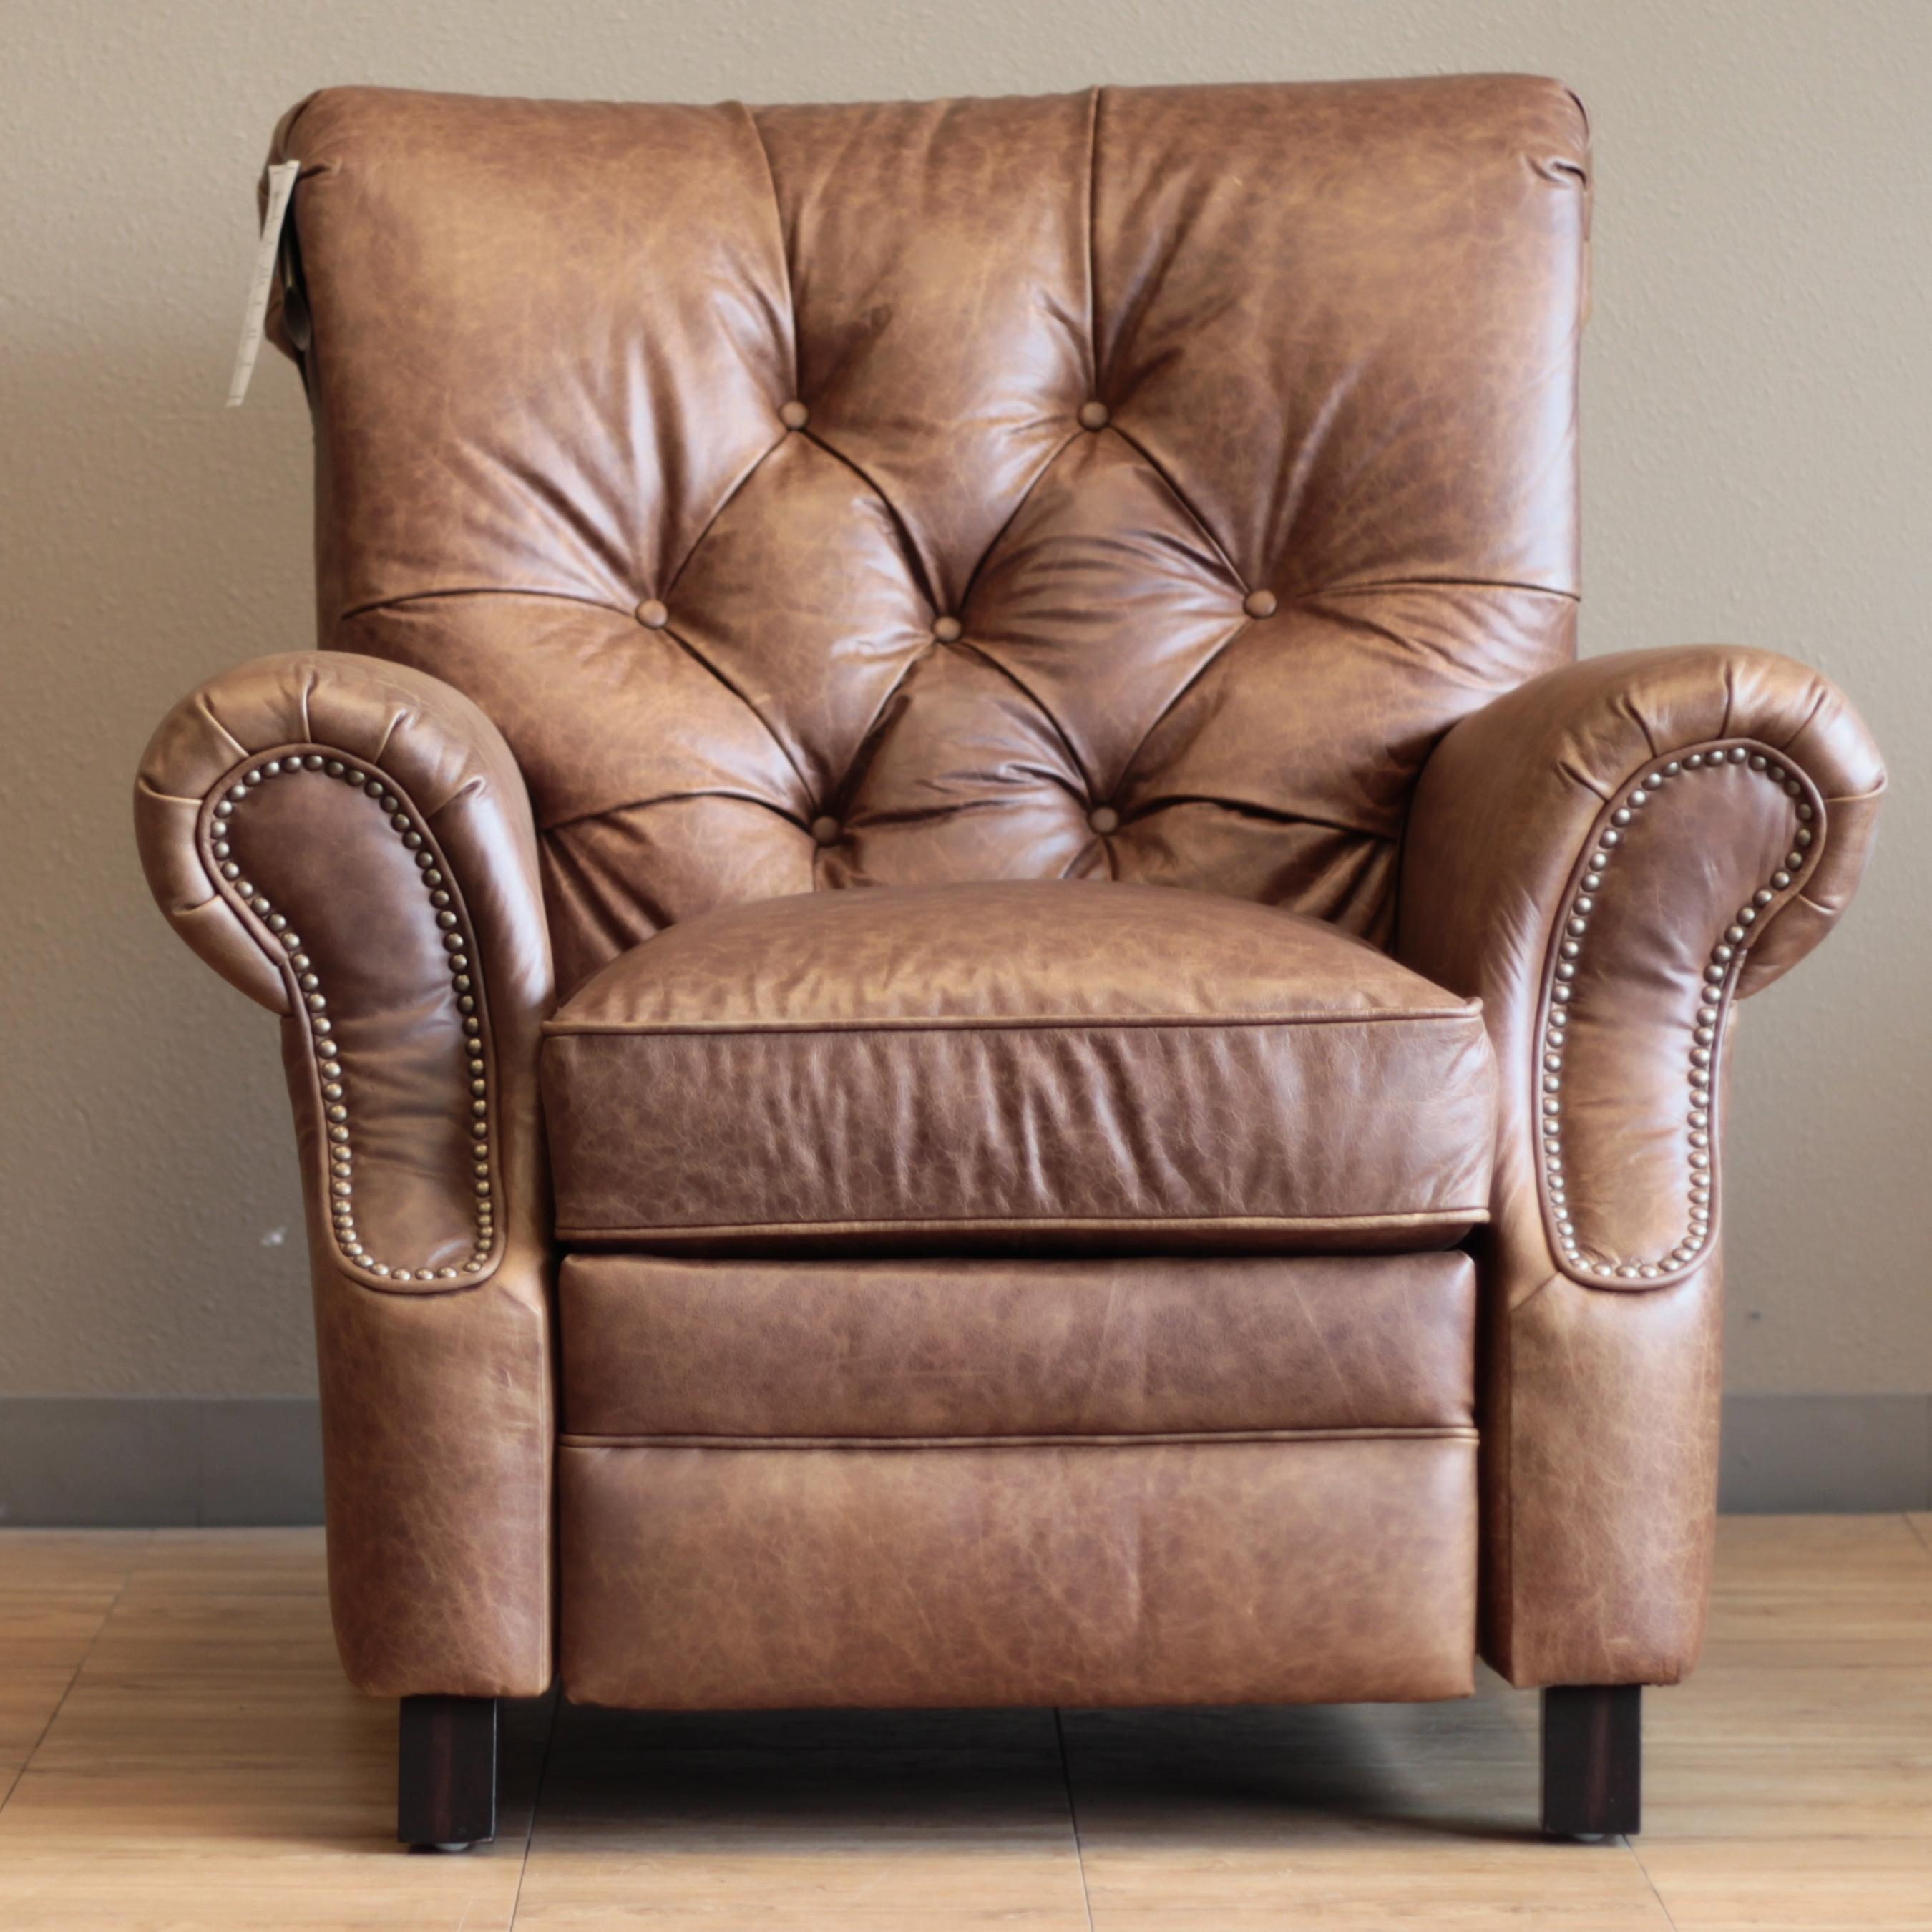 Barcalounger Phoenix Ii Recliner Chair – Leather Recliner Chair Regarding Barcalounger Sofas (View 4 of 20)